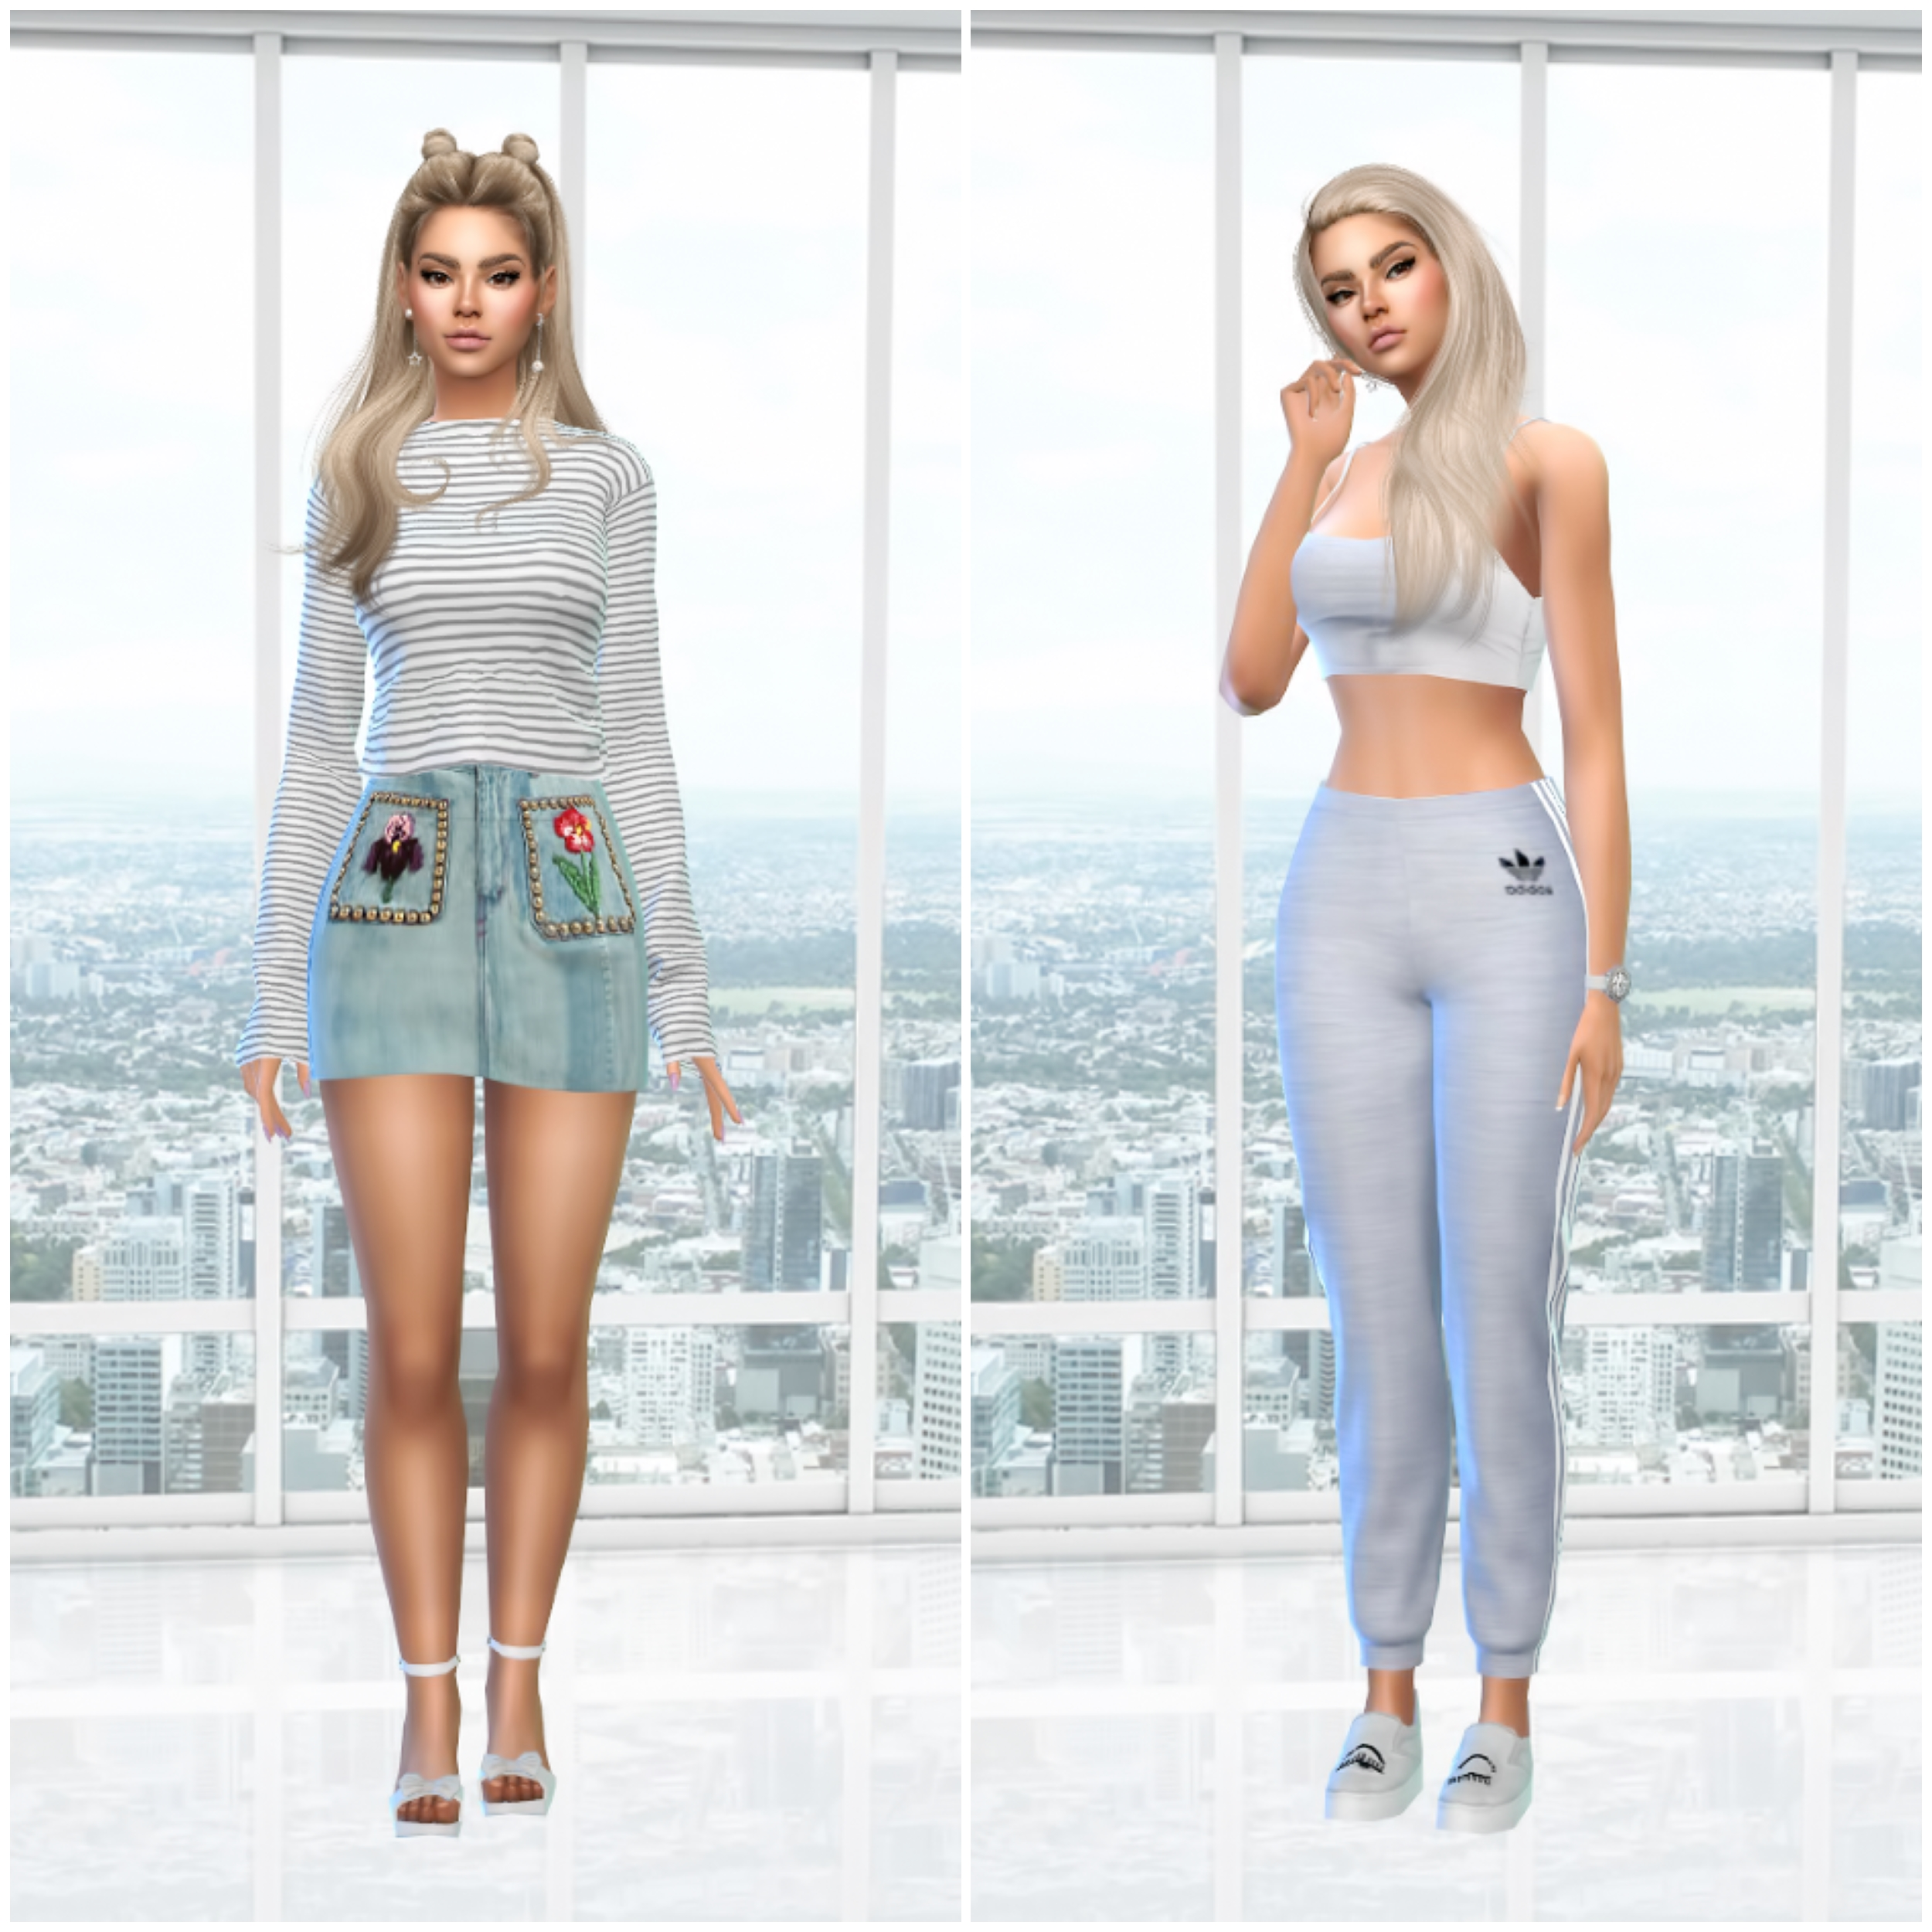 how to create a sim in sims 4